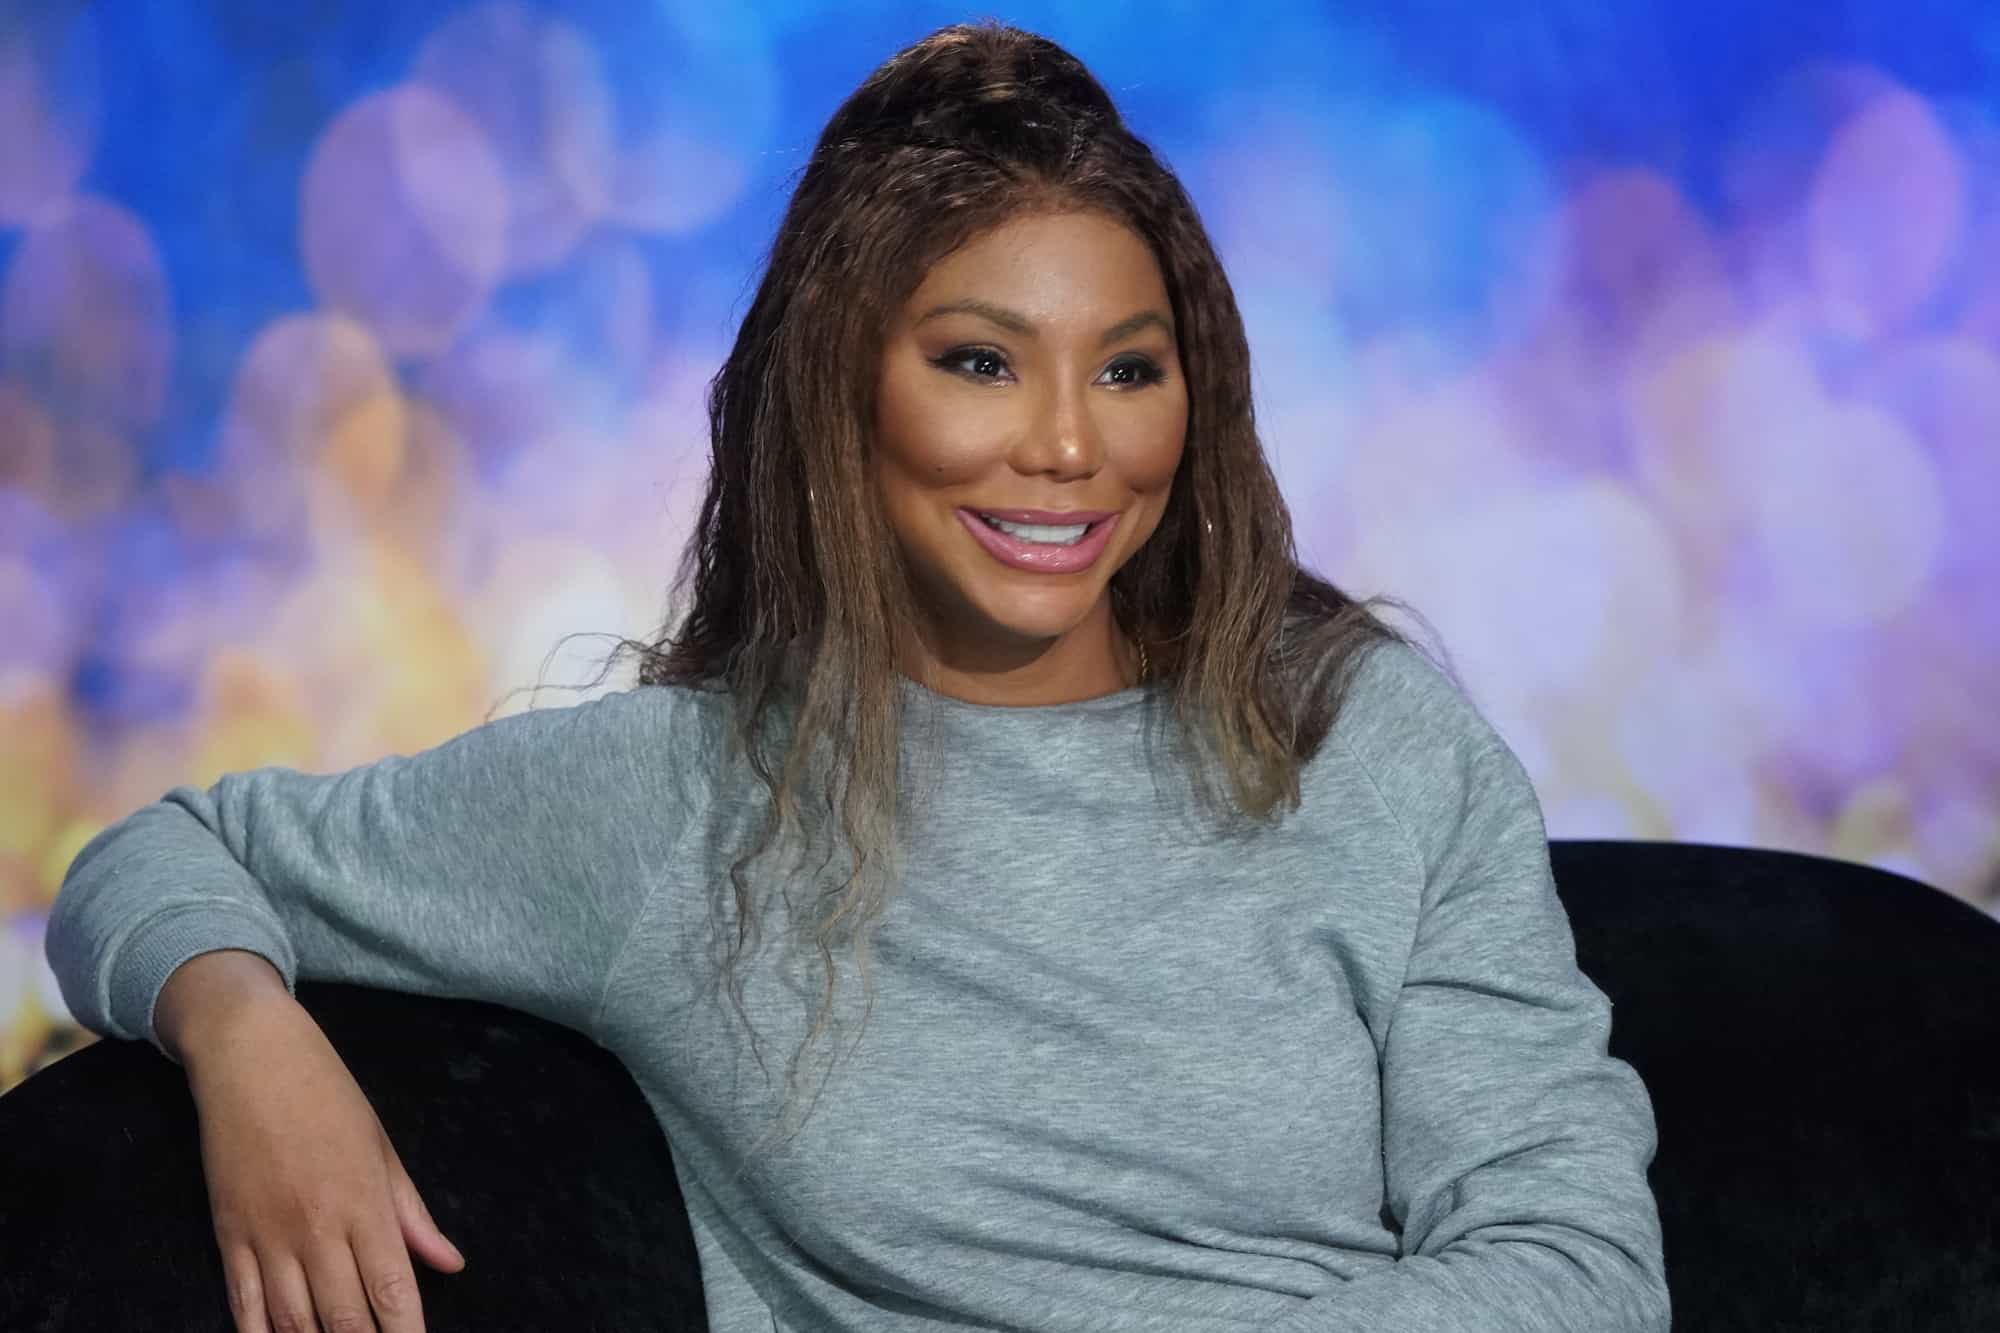 """tamar-braxton-begins-her-birthday-weekend-and-also-gushes-over-her-real-life-sister-check-out-the-crazy-video-which-has-fans-calling-her-ball-of-joy"""